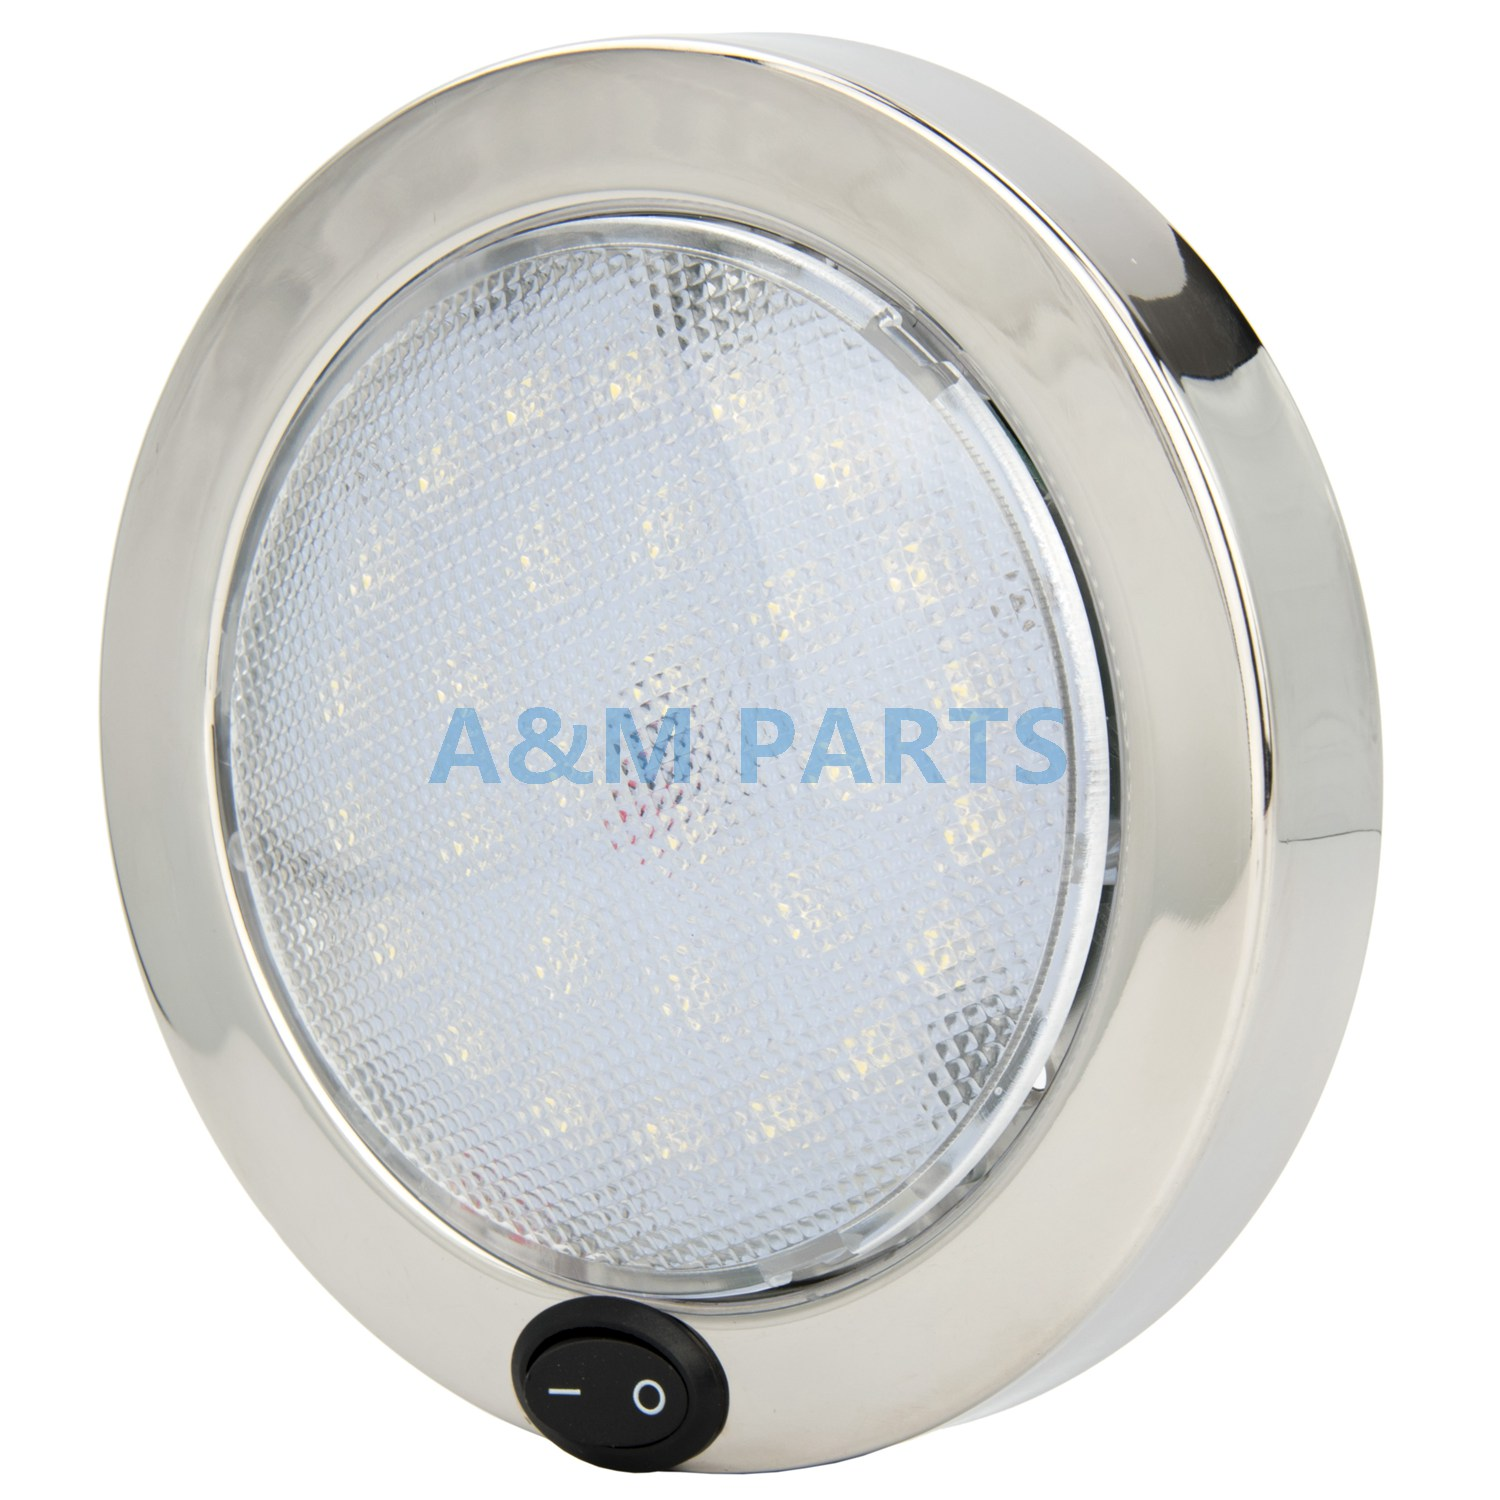 Us 33 36 24 Off Boat Caravan Rv Cabin Dome Light 12v P4 Led Marine Interior Stainless Steel Housing 140mm In Decorative Lamp From Automobiles